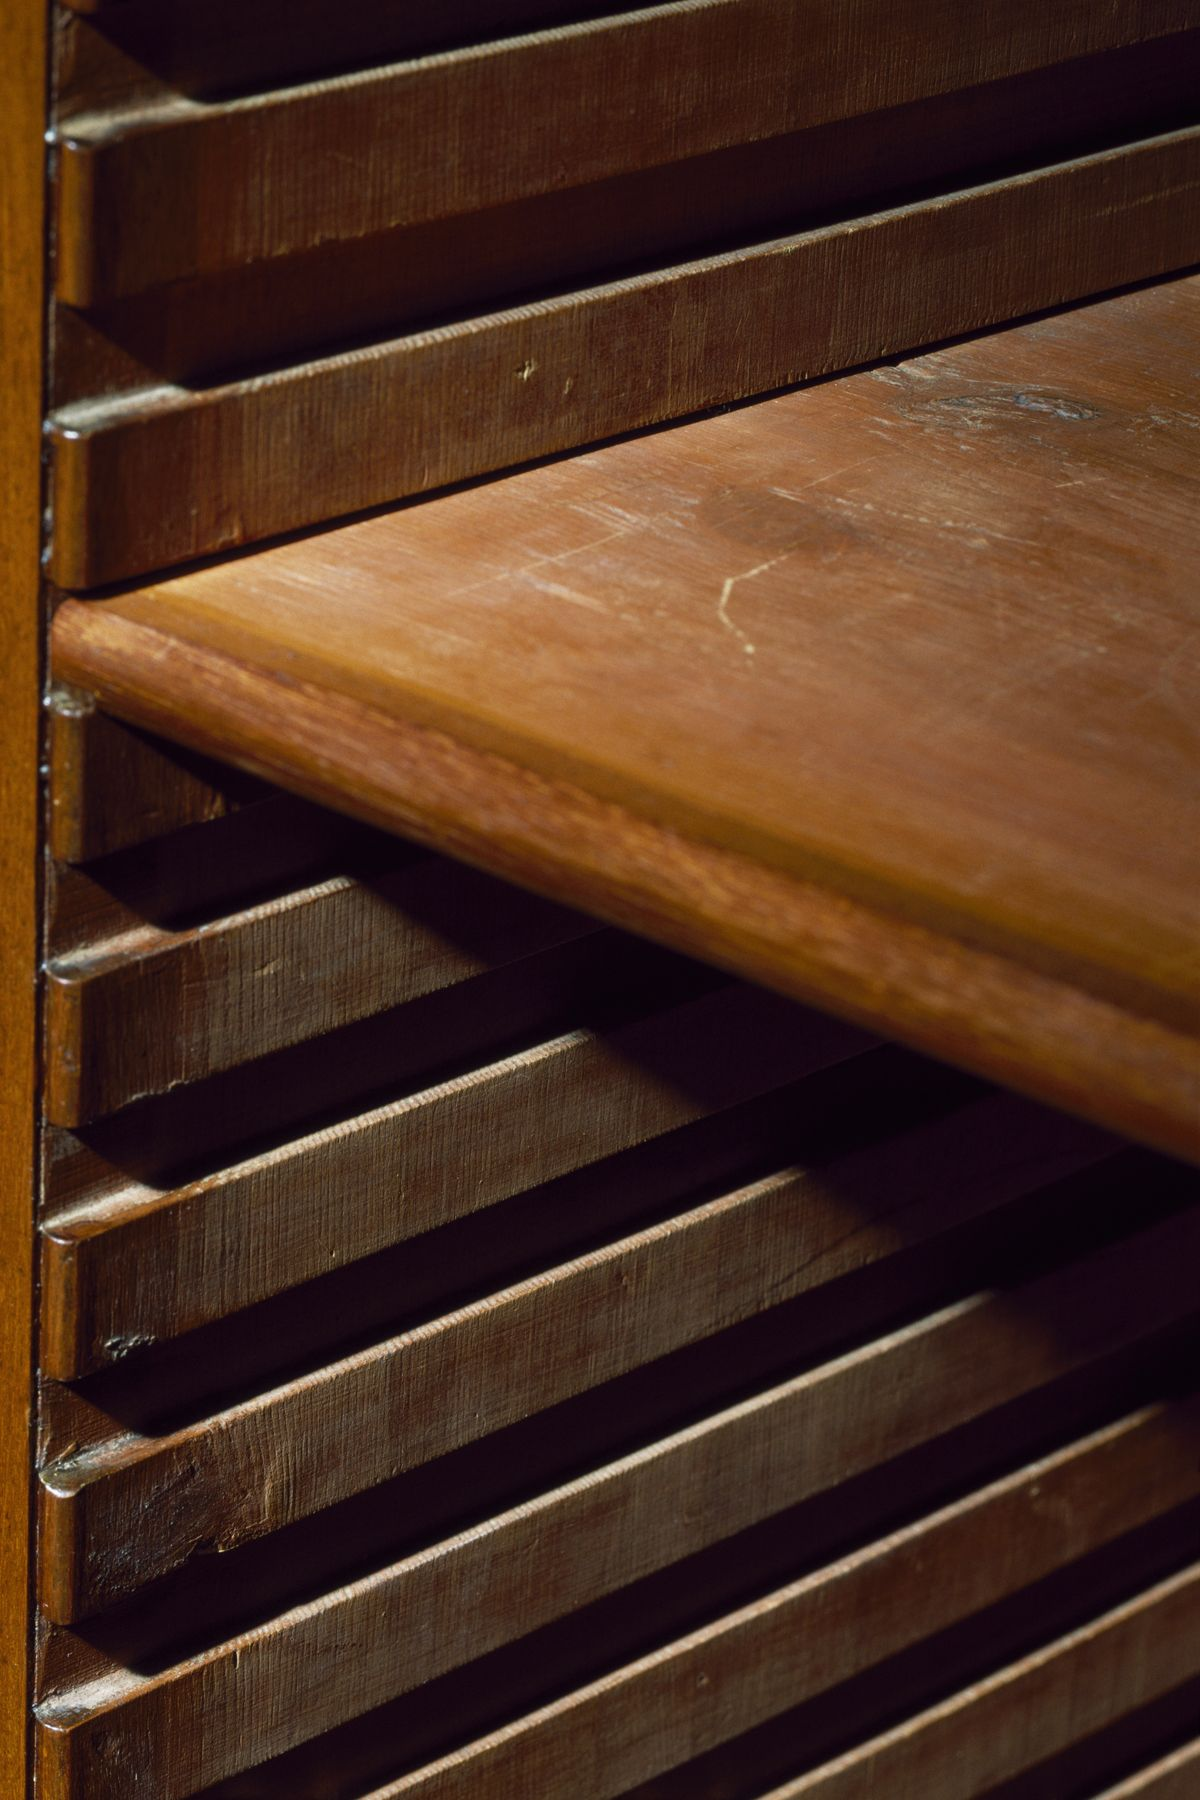 Shelf grooves, Regency-style mahogany bookcase, by Gillows of Lancaster, ca 1805, United Kingdom, 19th century Detail